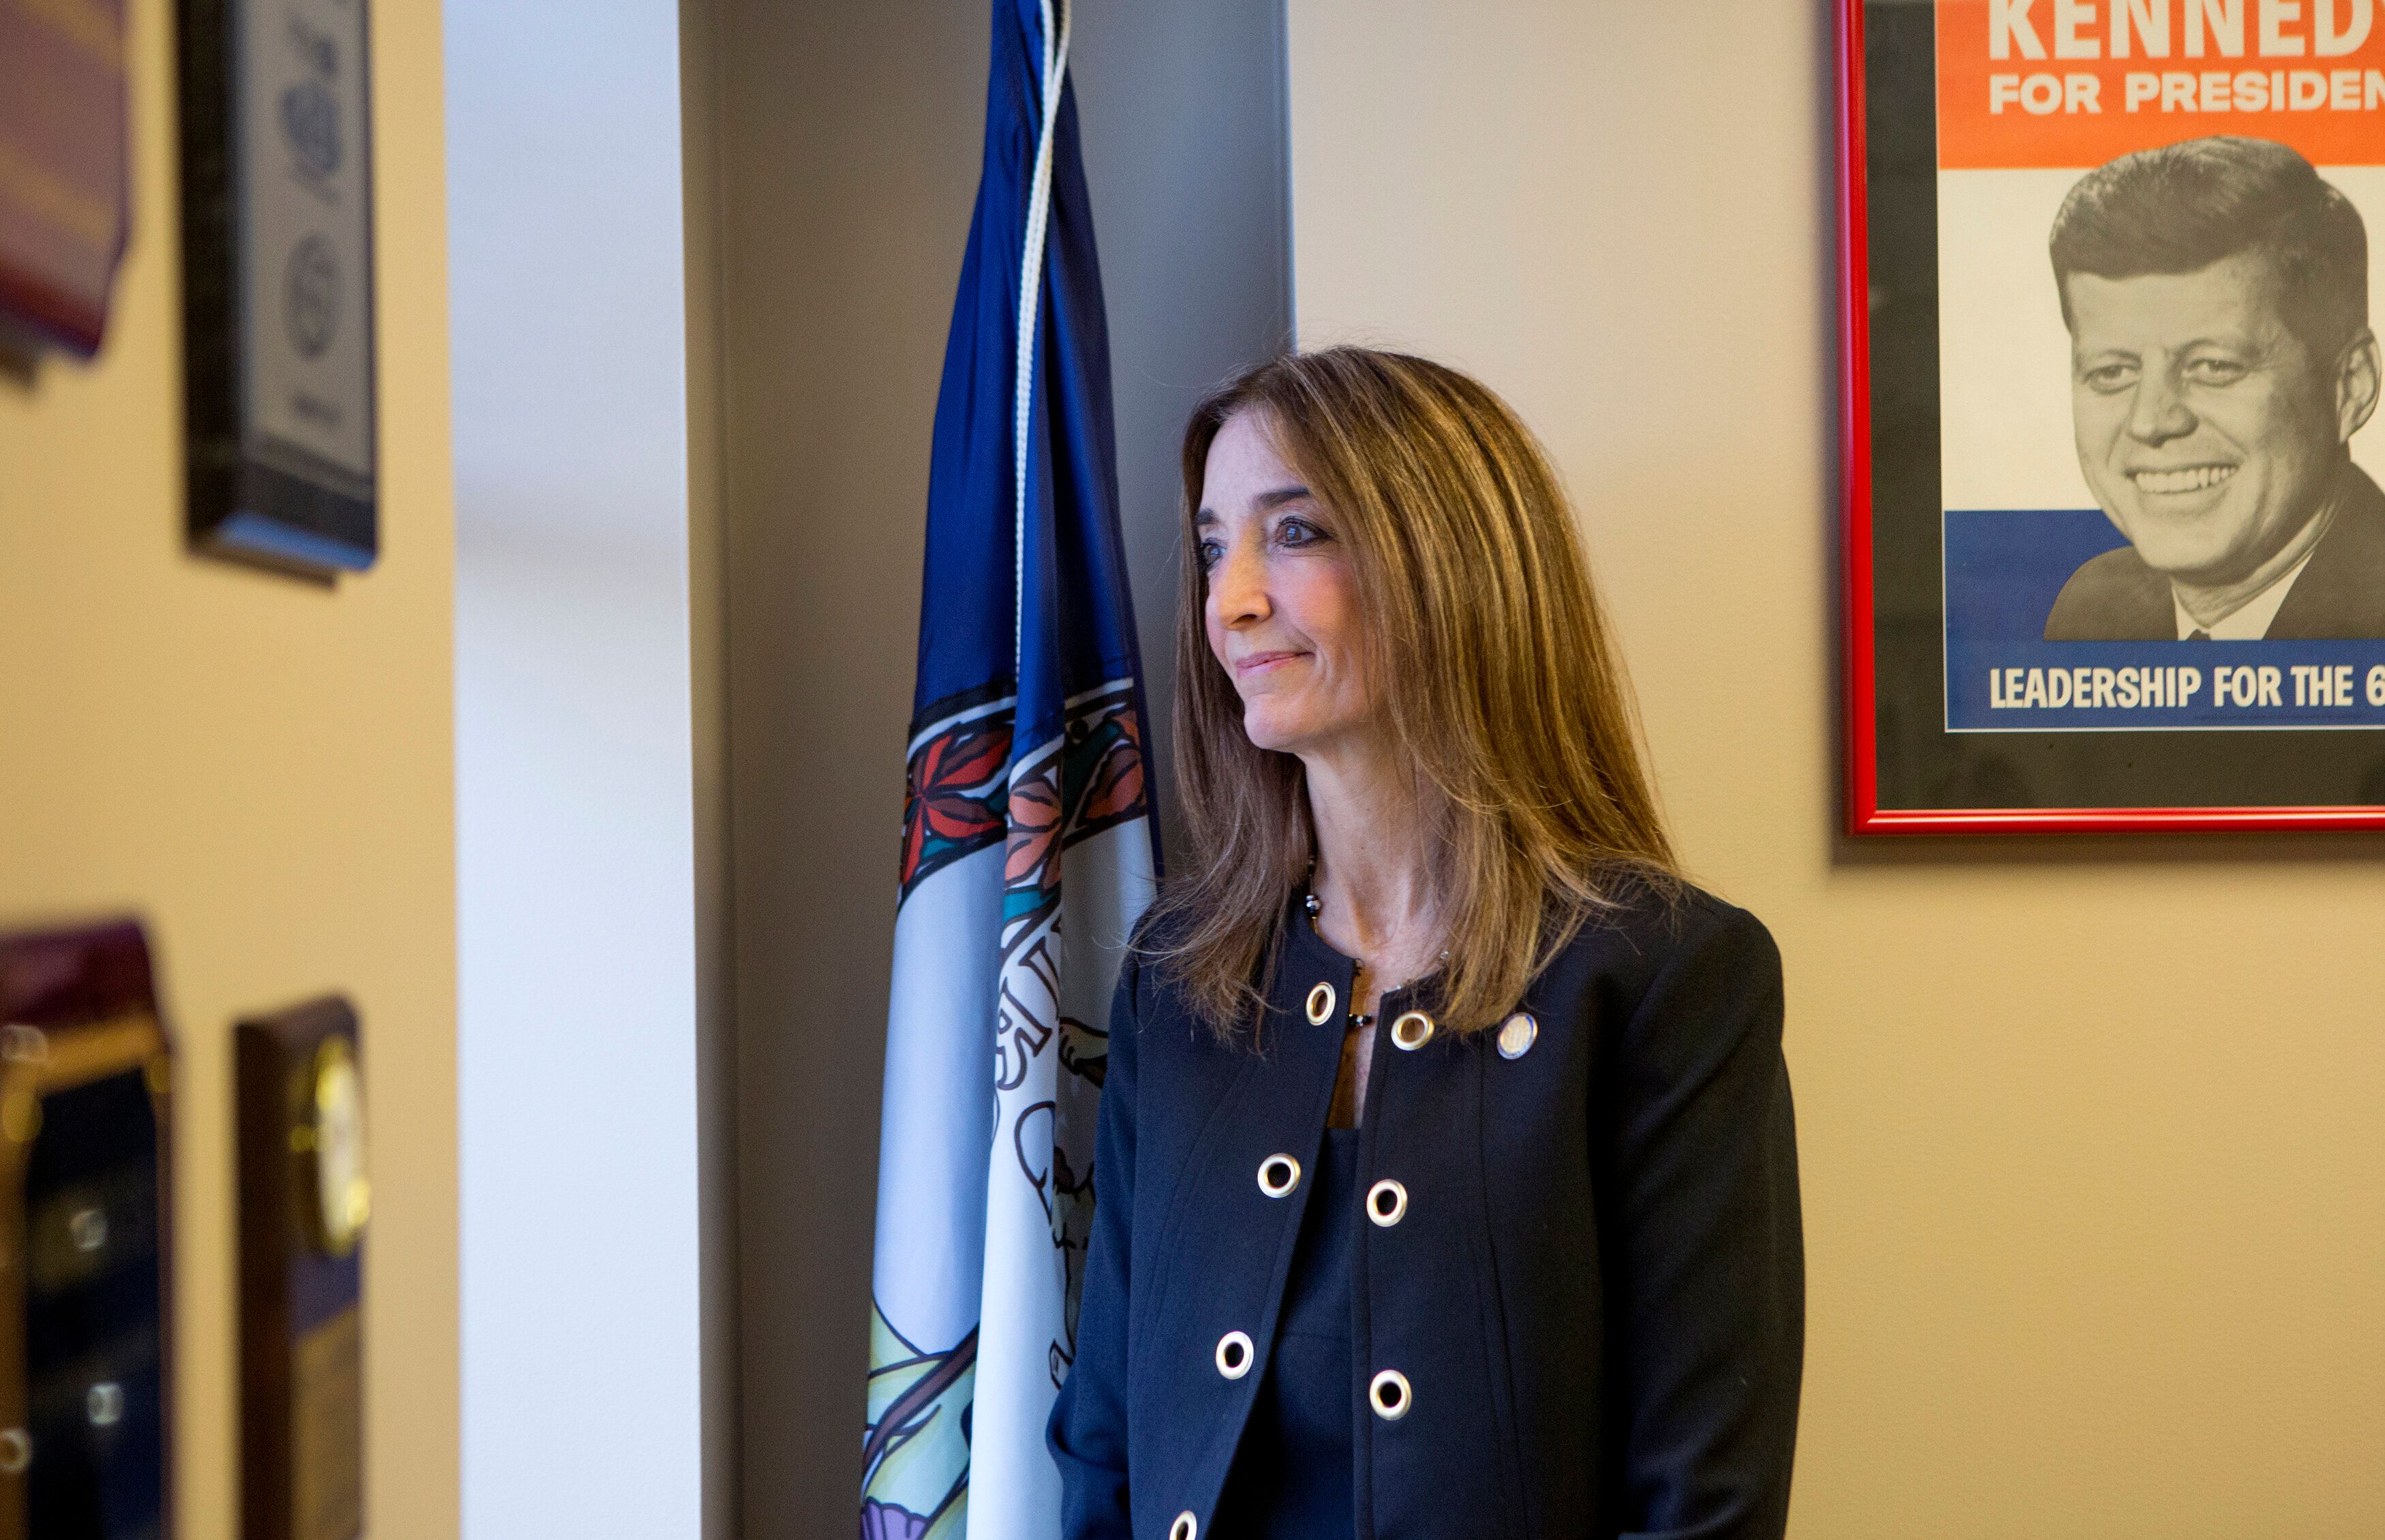 Virginia Del. Eileen Filler-Corn (D) is arguing that she has successfully steered the state House Democratic Caucus through a